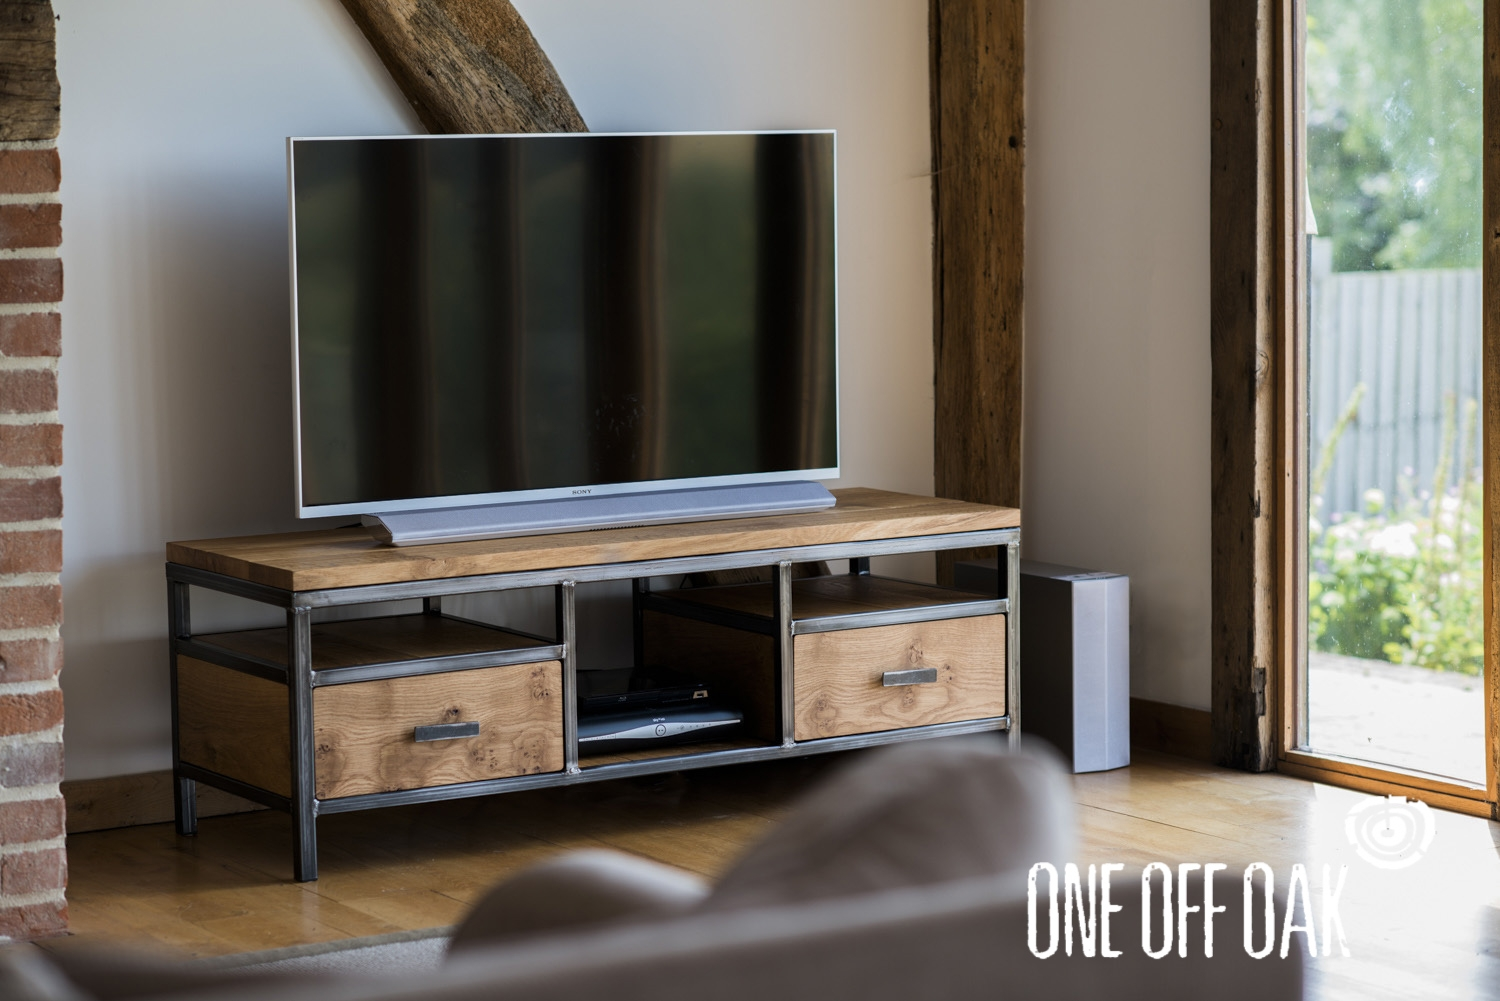 Tv Cabinet Bespoke Handmade Furniture From English Oak Within Bespoke Tv Cabinet (View 8 of 15)